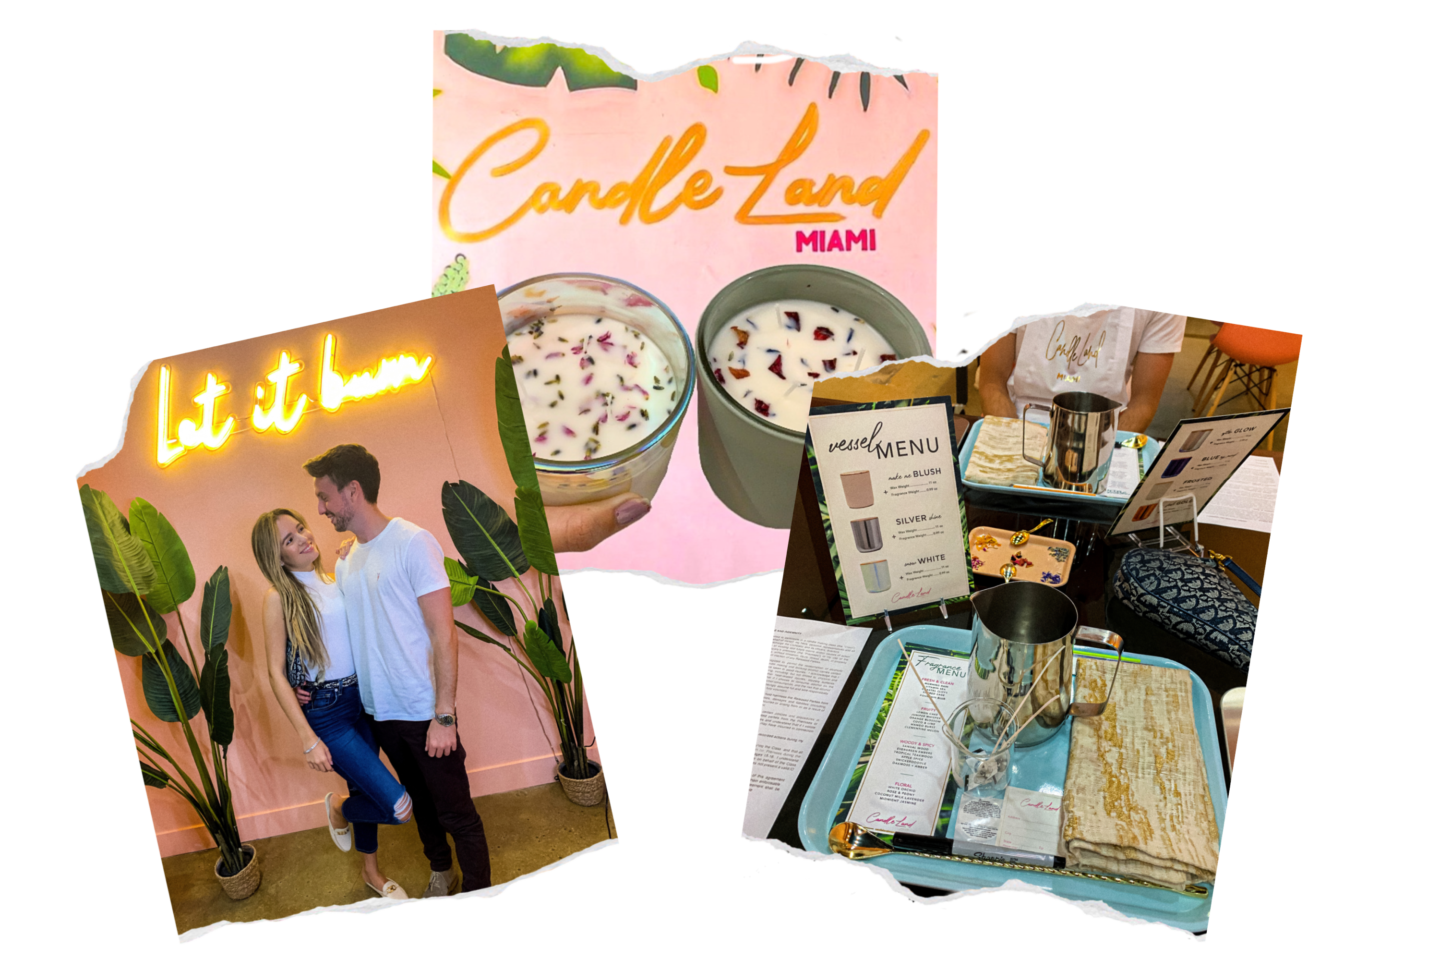 miami date night ideas, candleland miami, candle making class